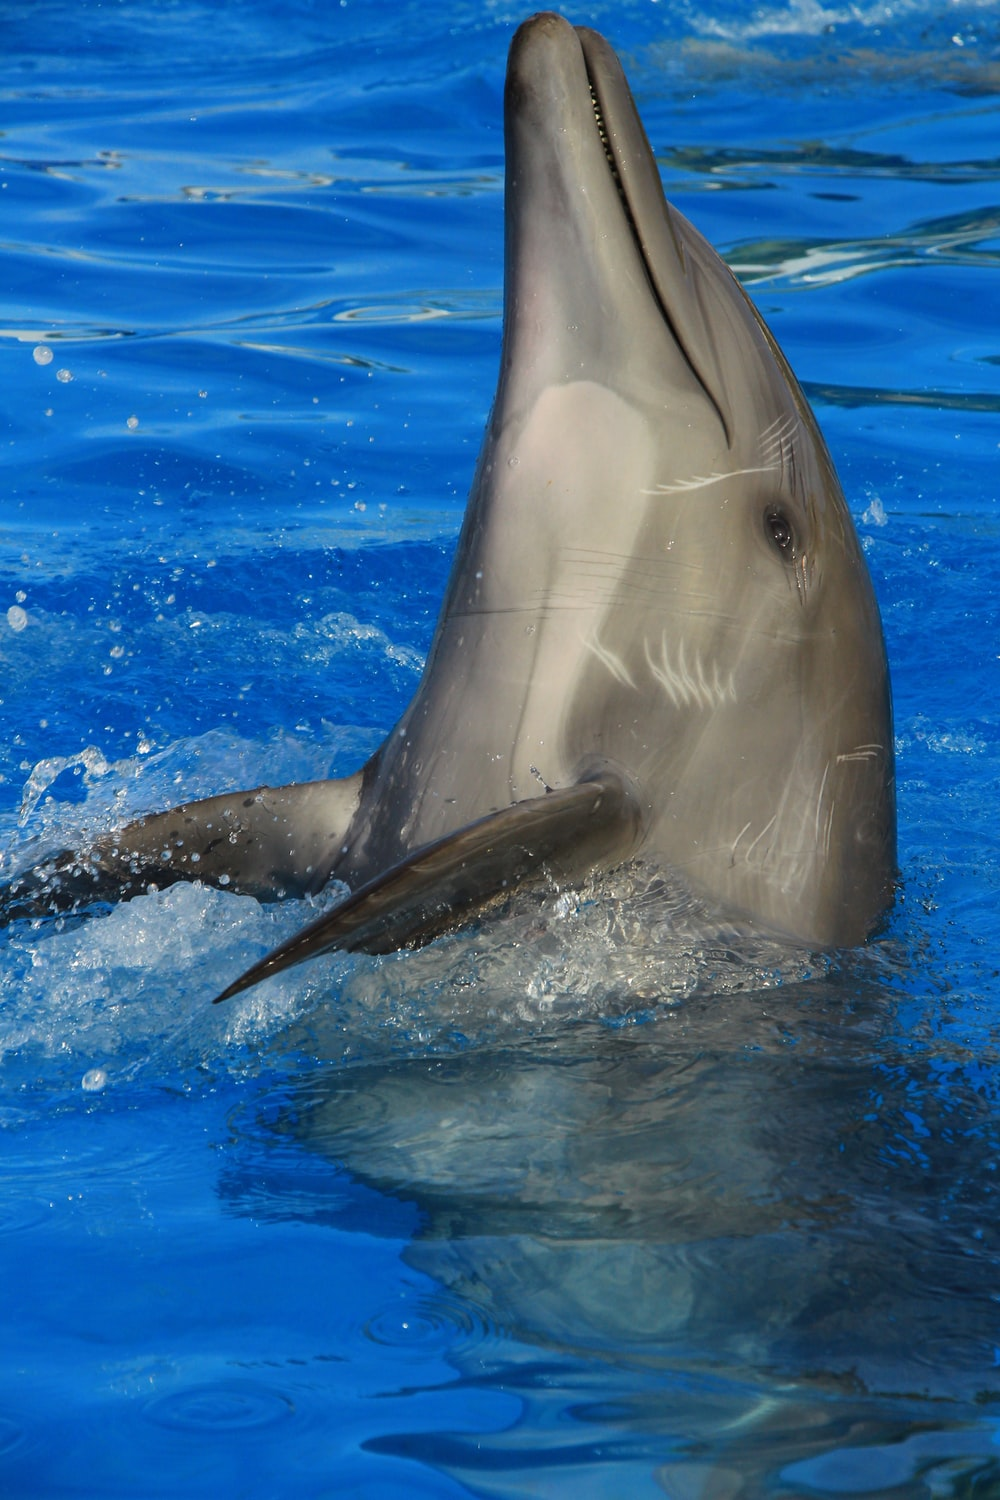 gray dolphin in water during daytime